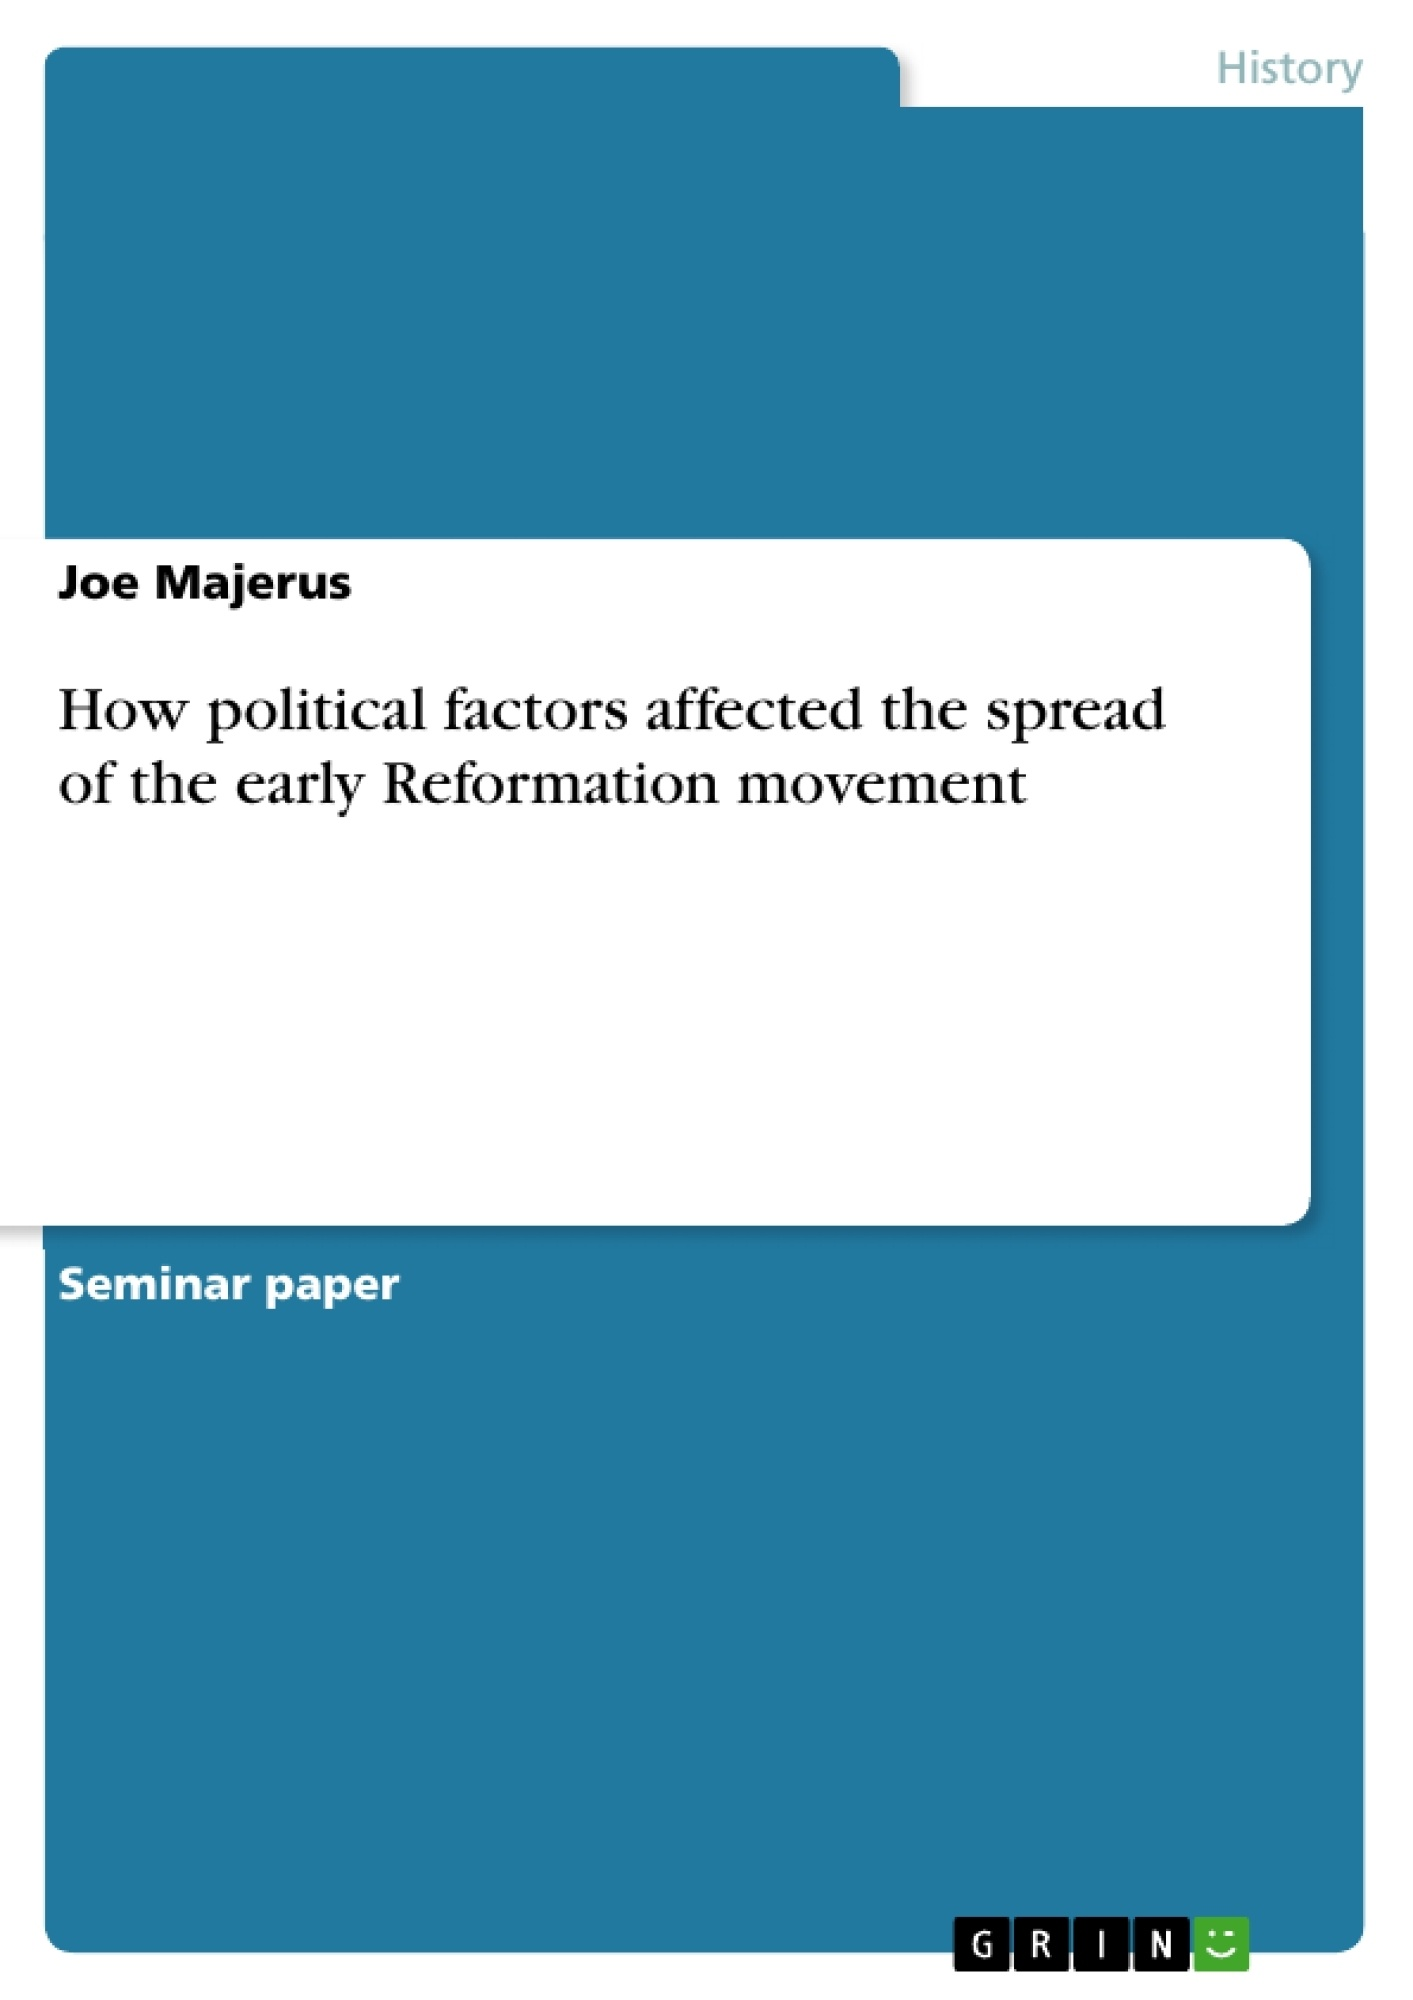 Title: How political factors affected the spread of the early Reformation movement